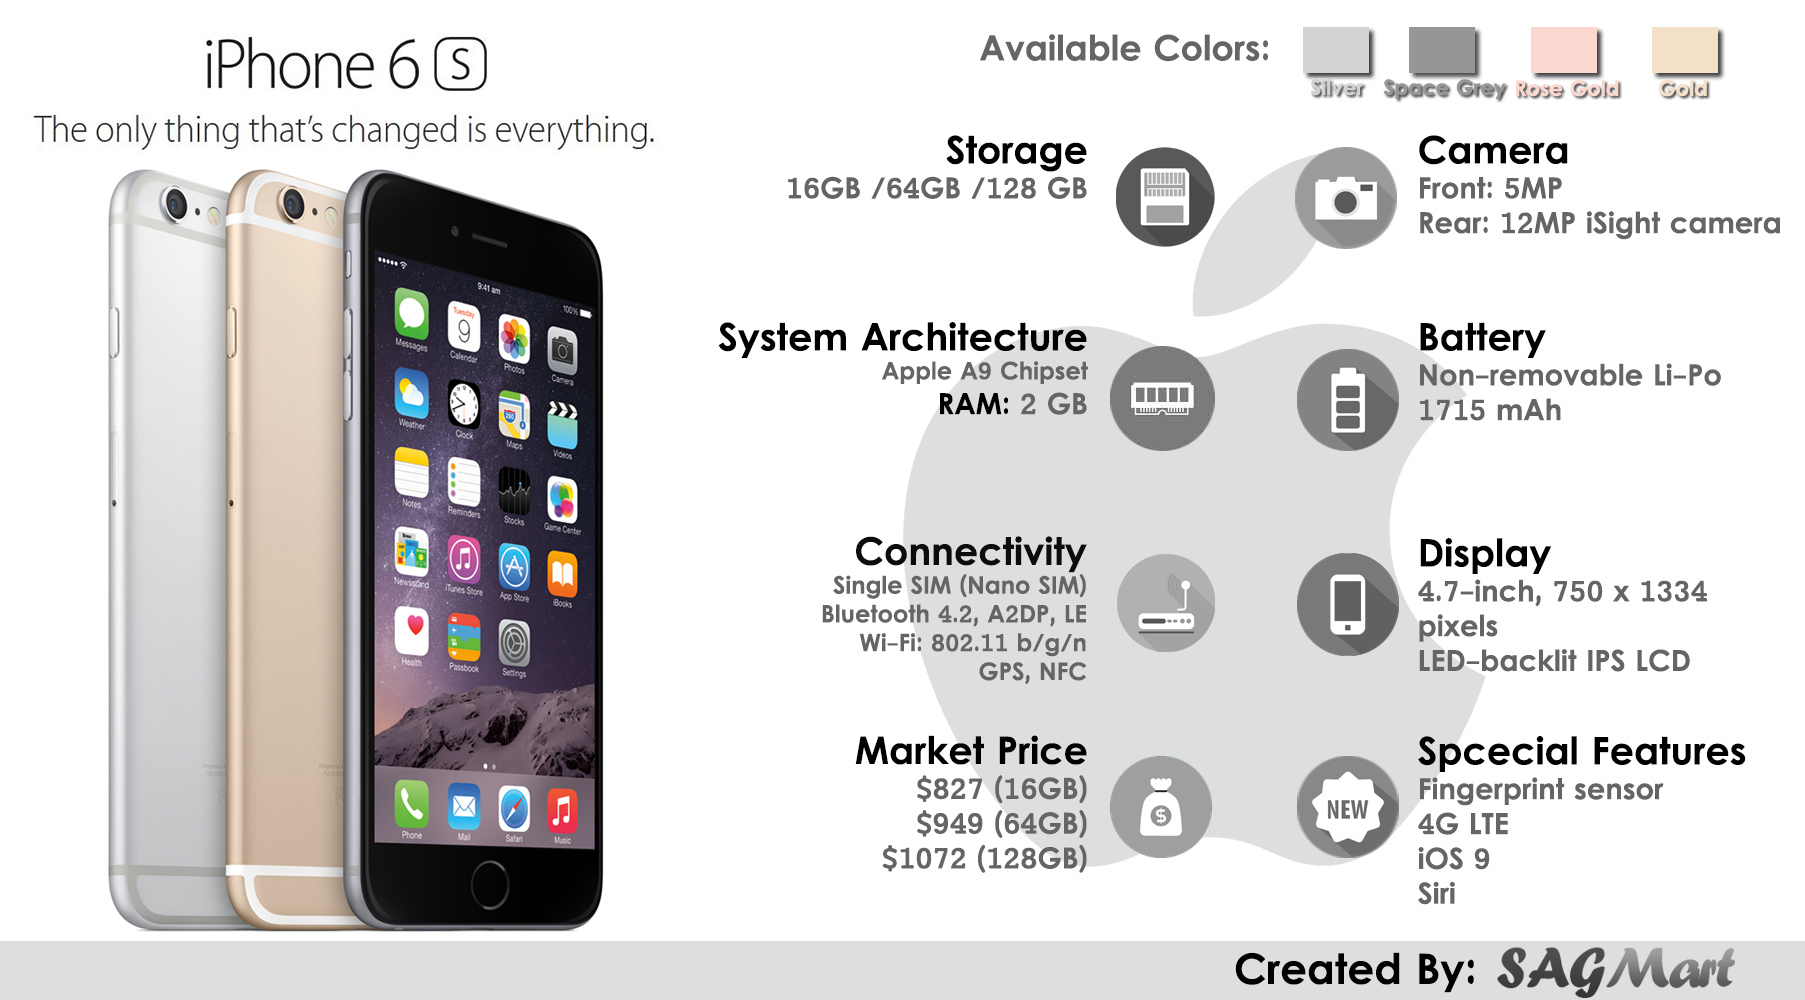 iphone 6s features apple iphone 6s mobile specifications infographic sagmart 1086